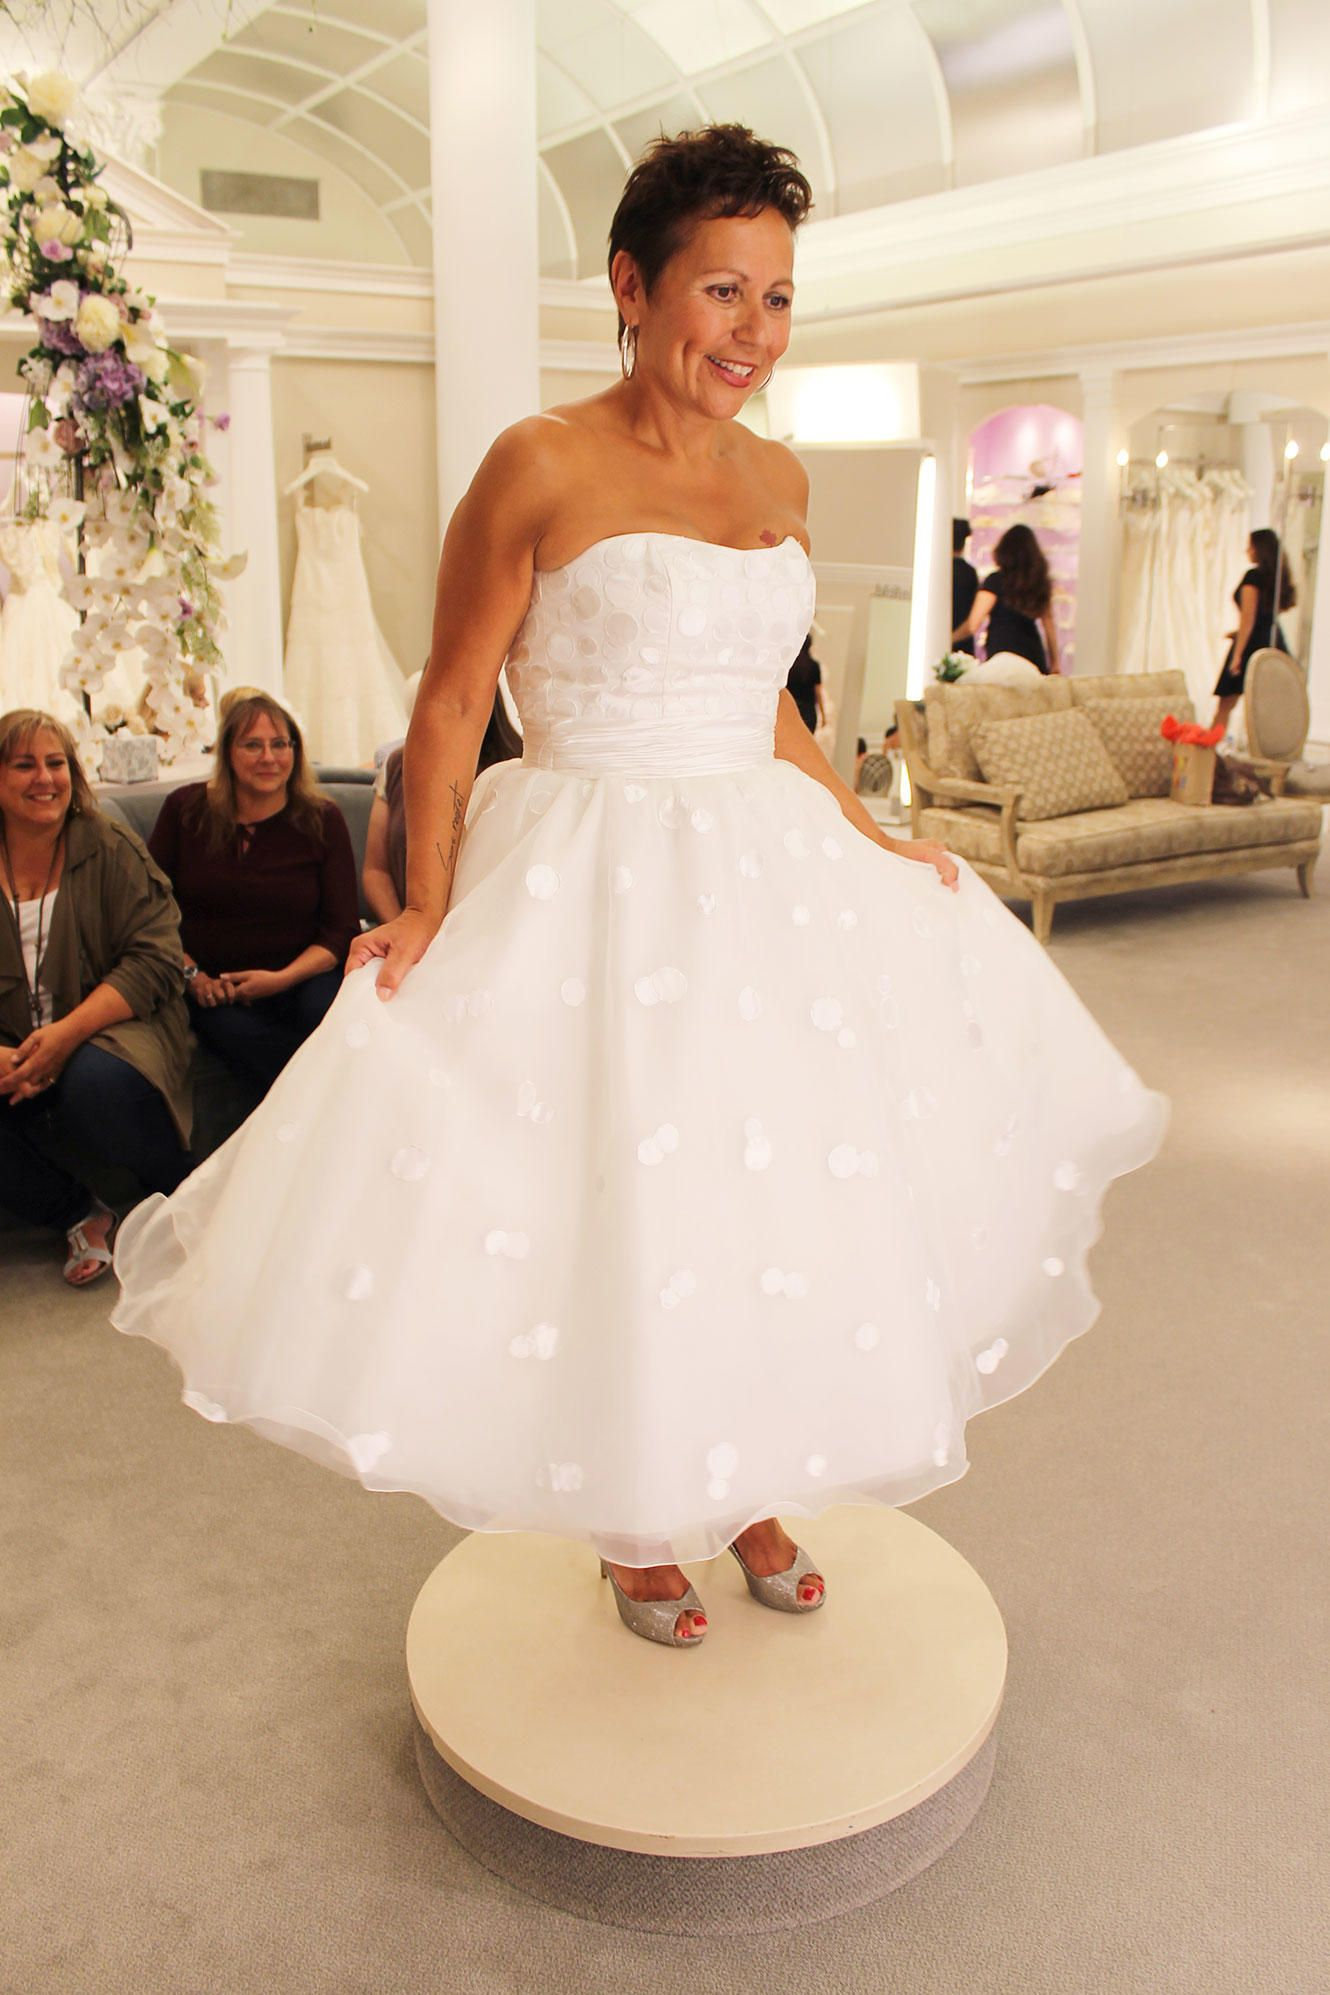 Tlc Official Site Polka Dot Wedding Dress Wedding Dresses Cute Wedding Dress